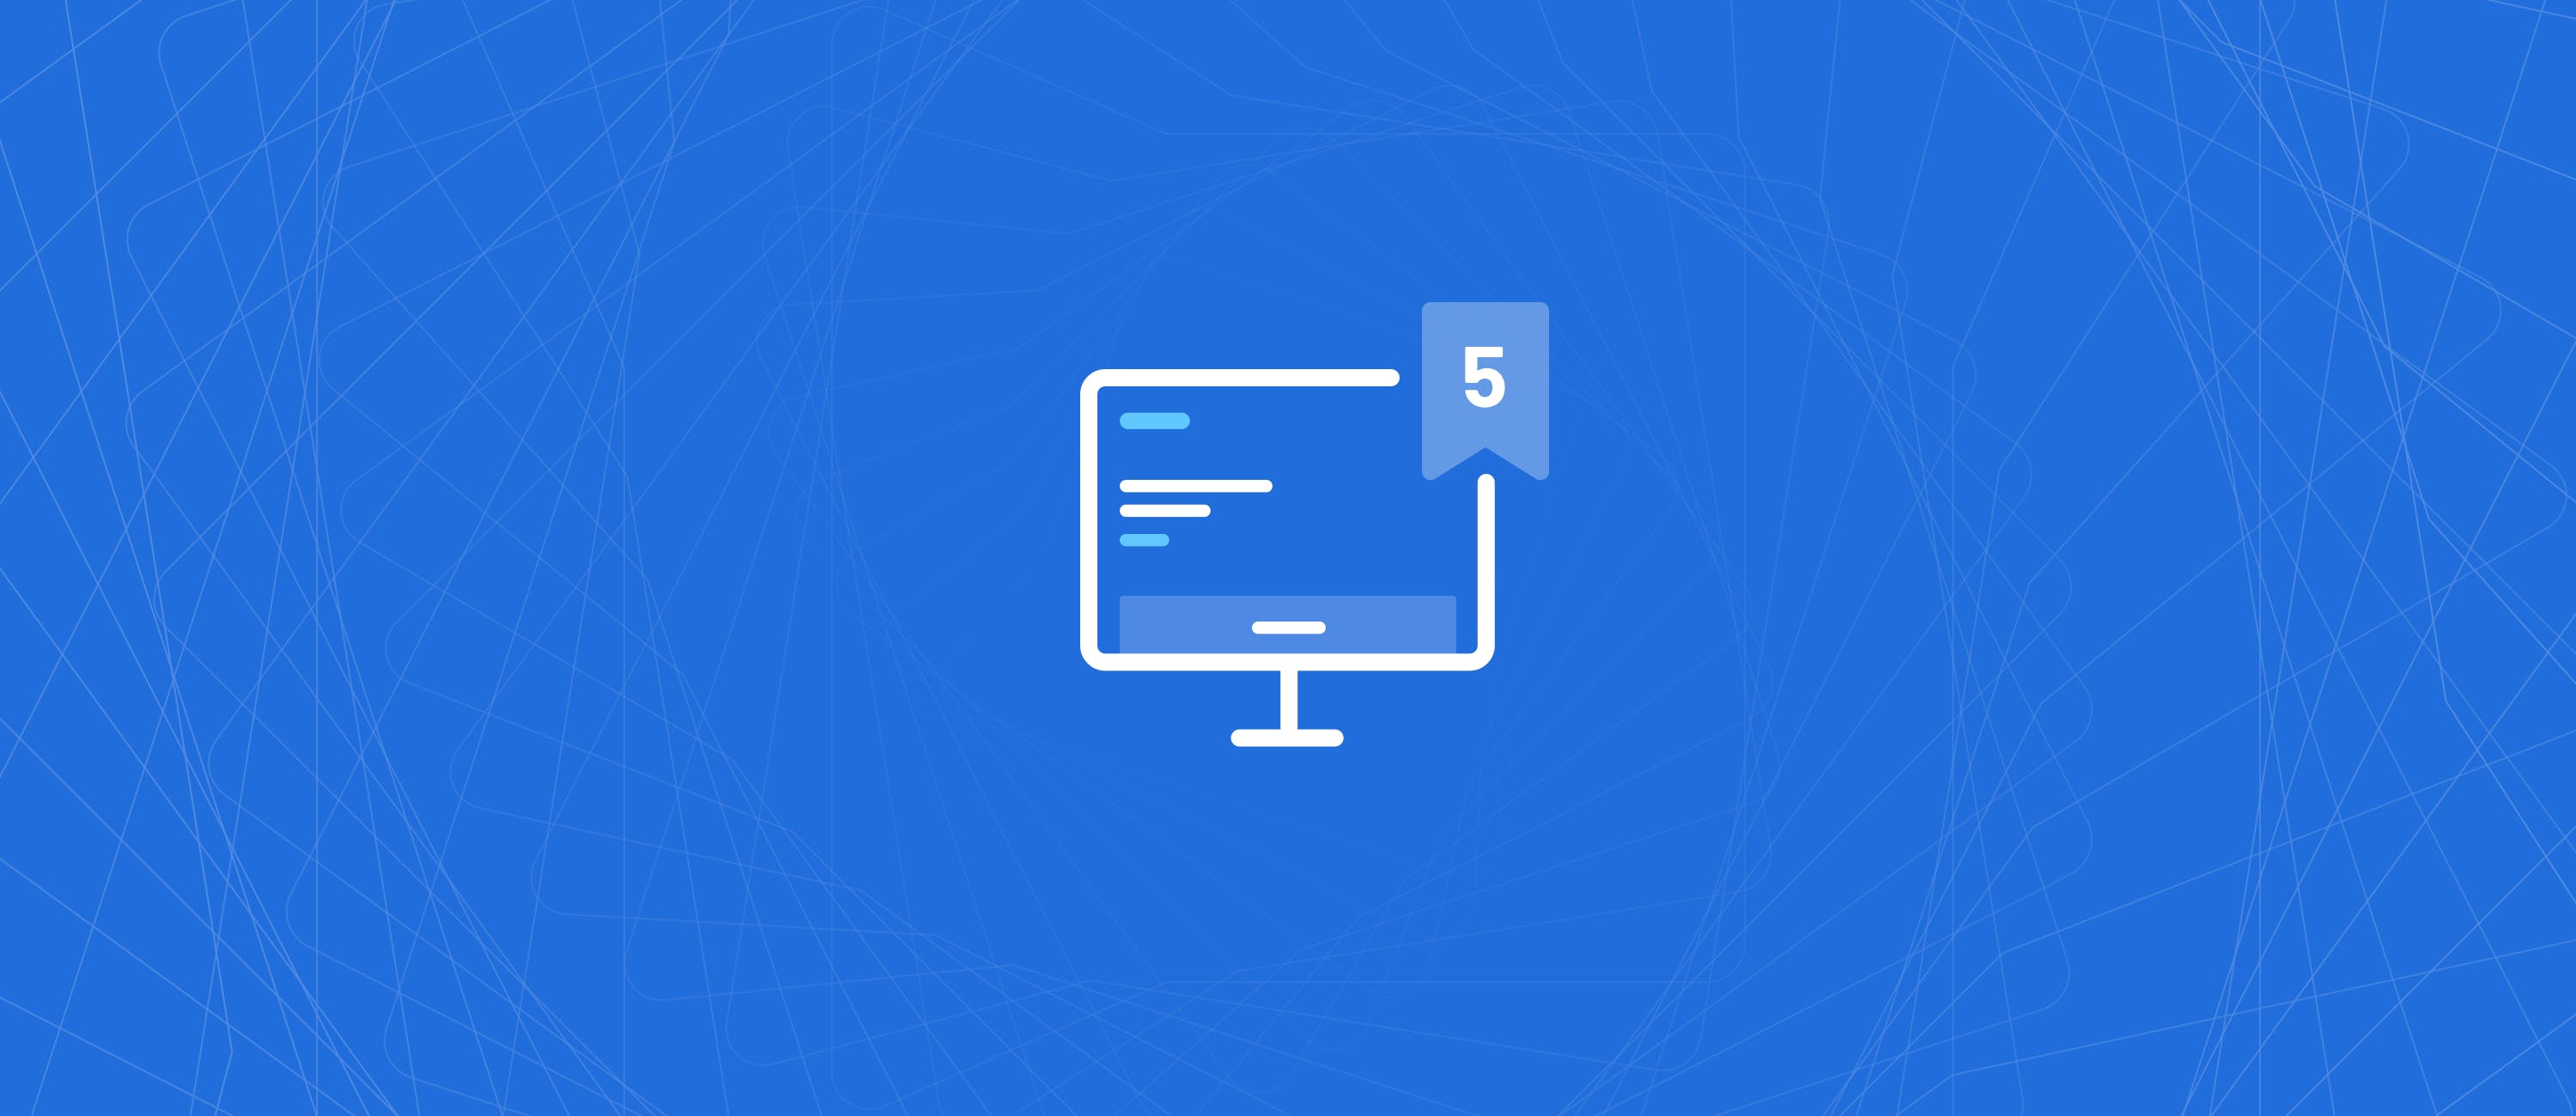 5 More Ways to Improve User Experience on Your Website